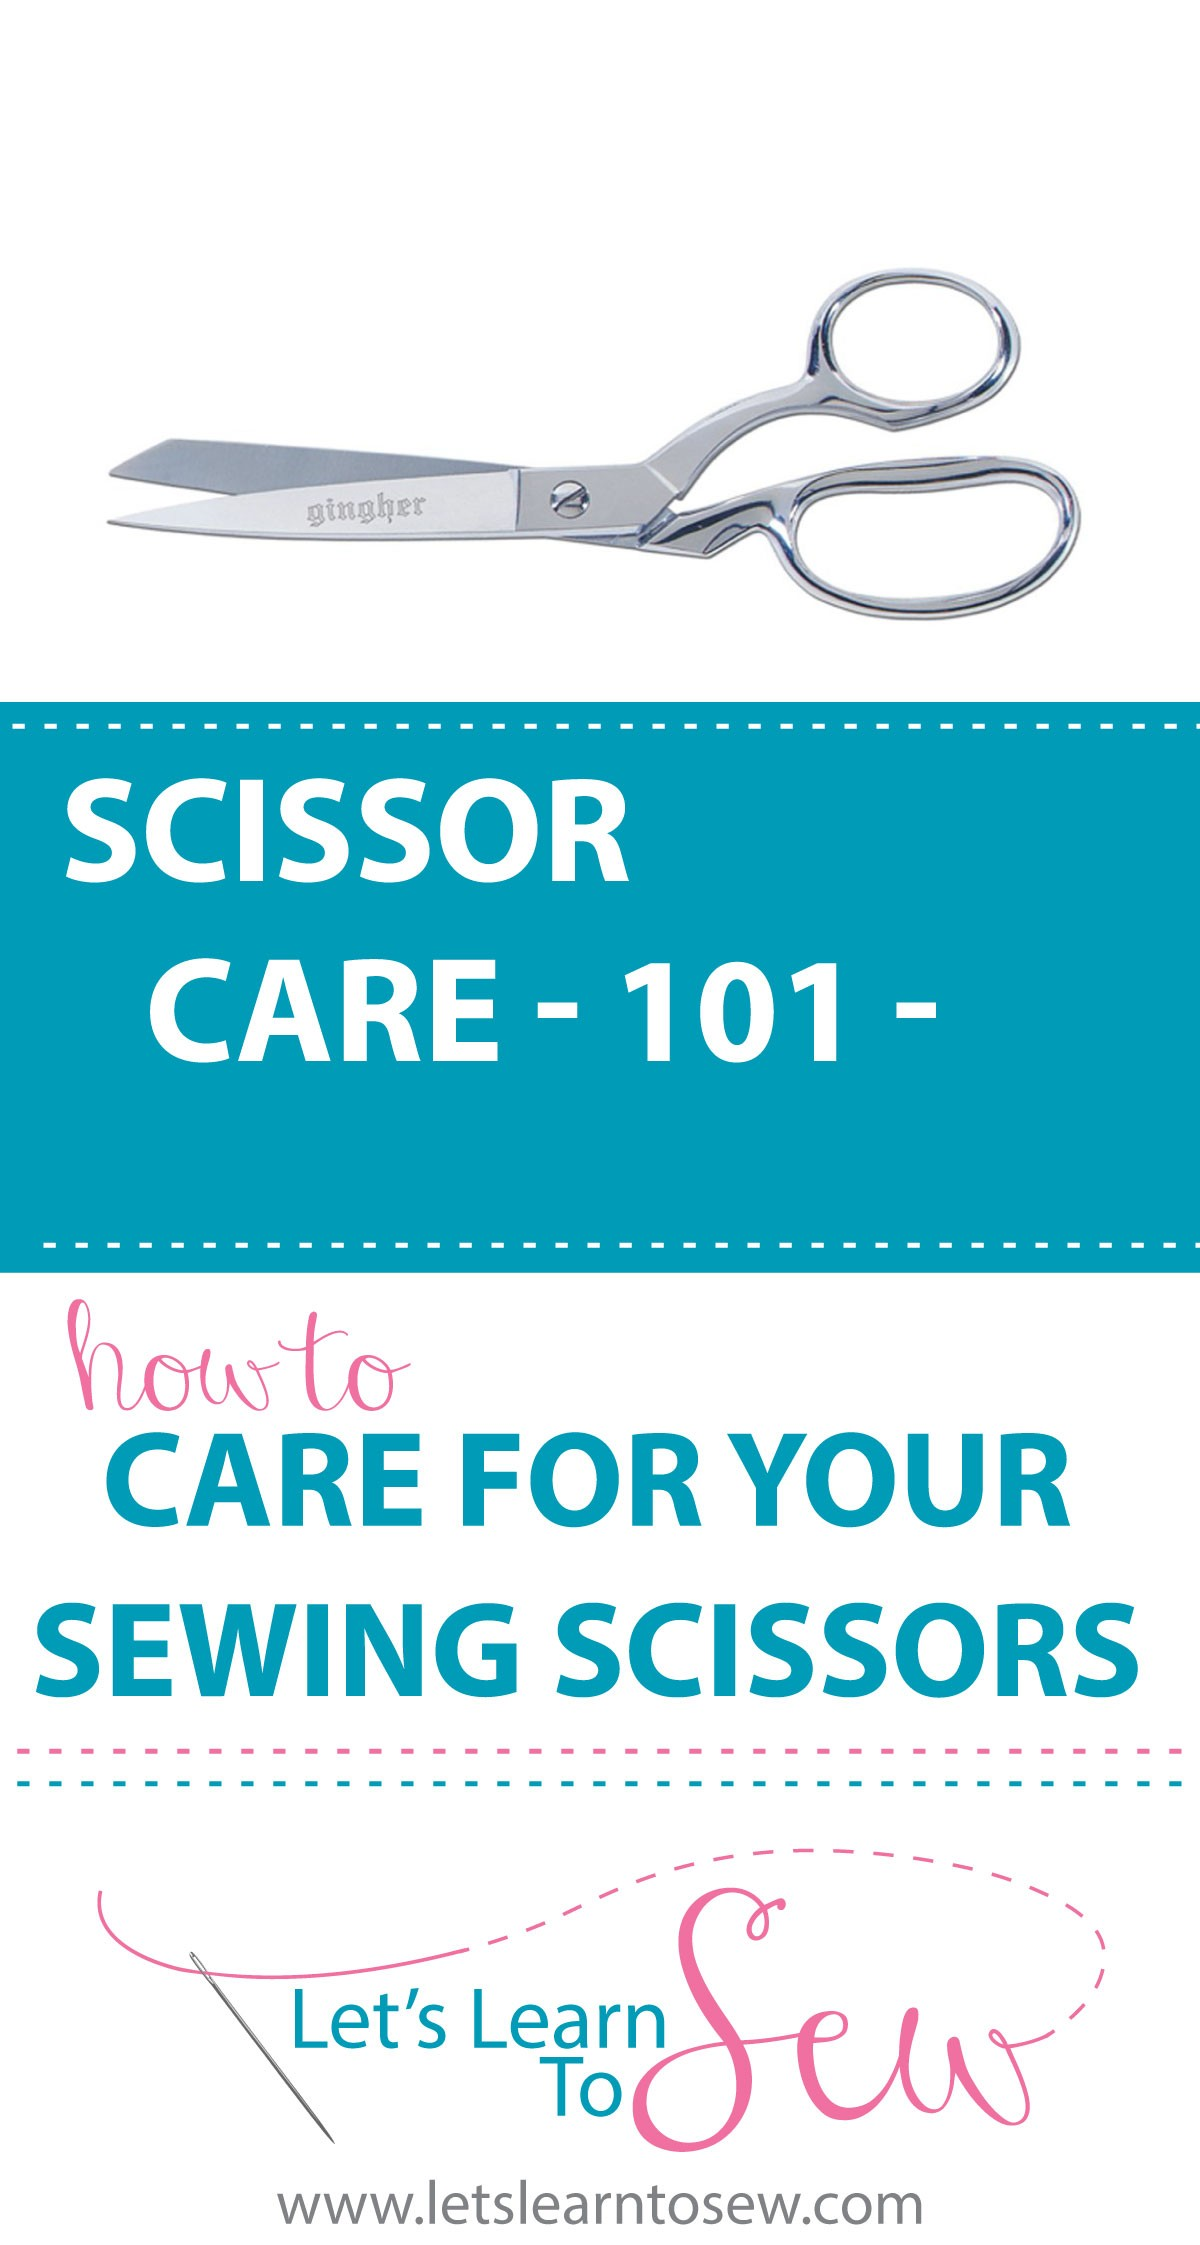 How to properly care for your sewing scissors